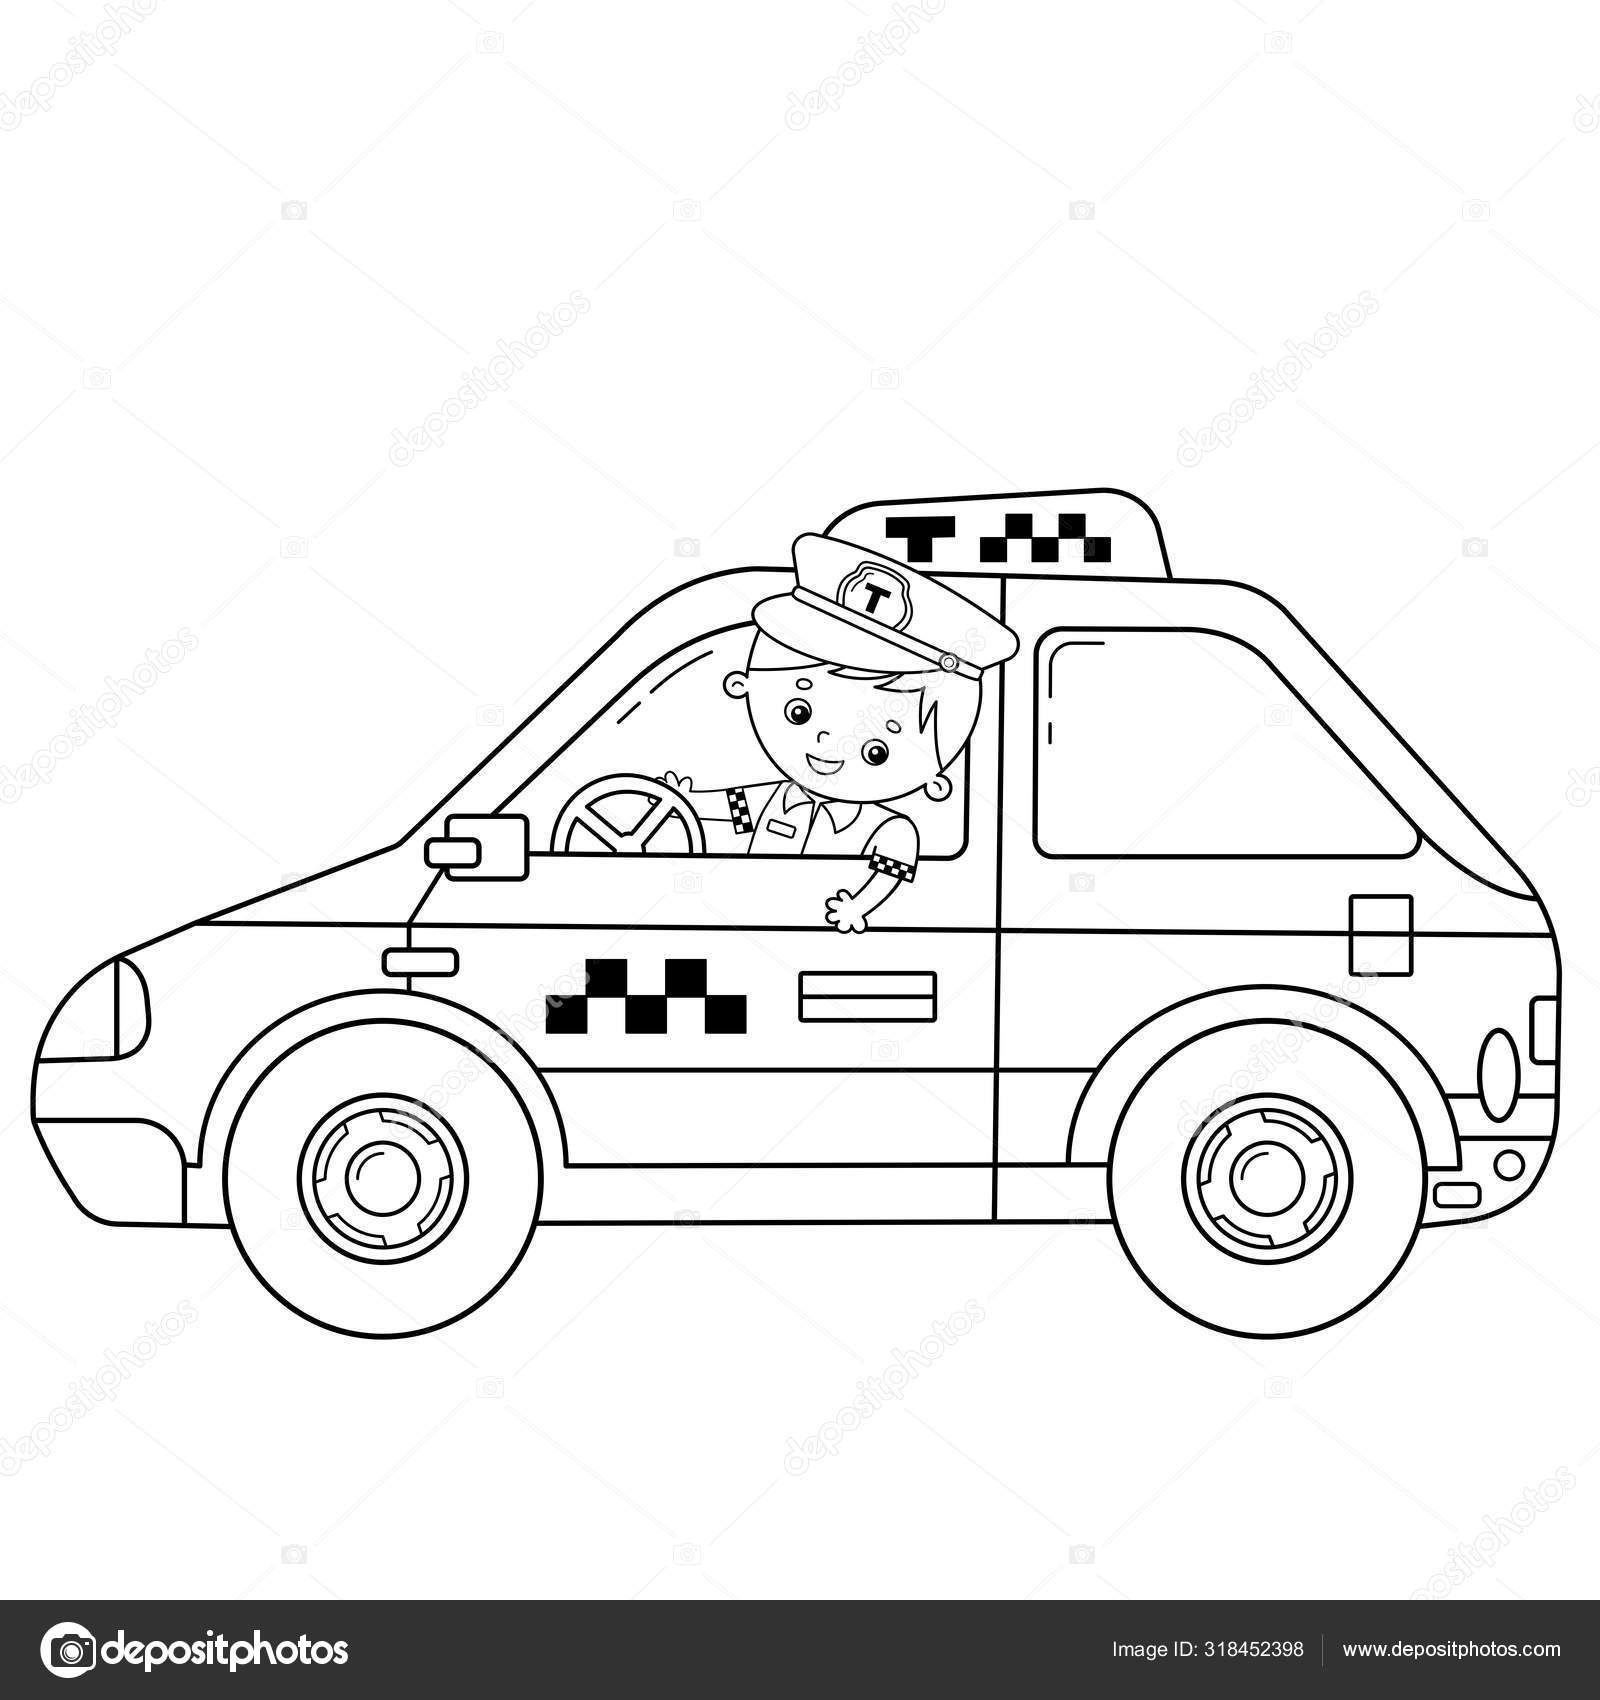 Coloring Page Outline Of Cartoon Taxi Driver With Car Profession Driver Taxi Image Transport Or Vehicle For Children Coloring Book For Kids Vector Image By C Oleon17 Vector Stock 318452398